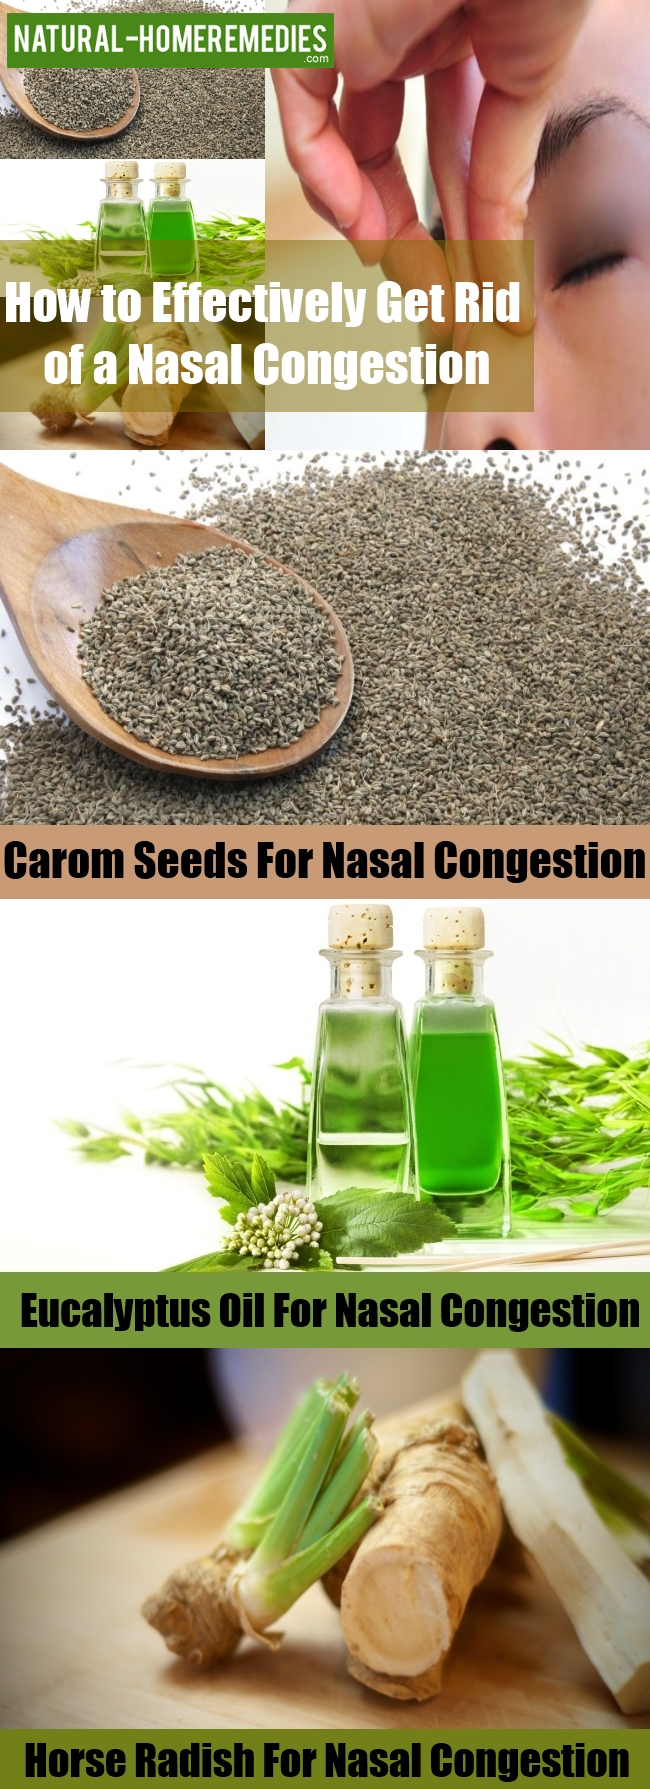 Get Rid of a Nasal Congestion